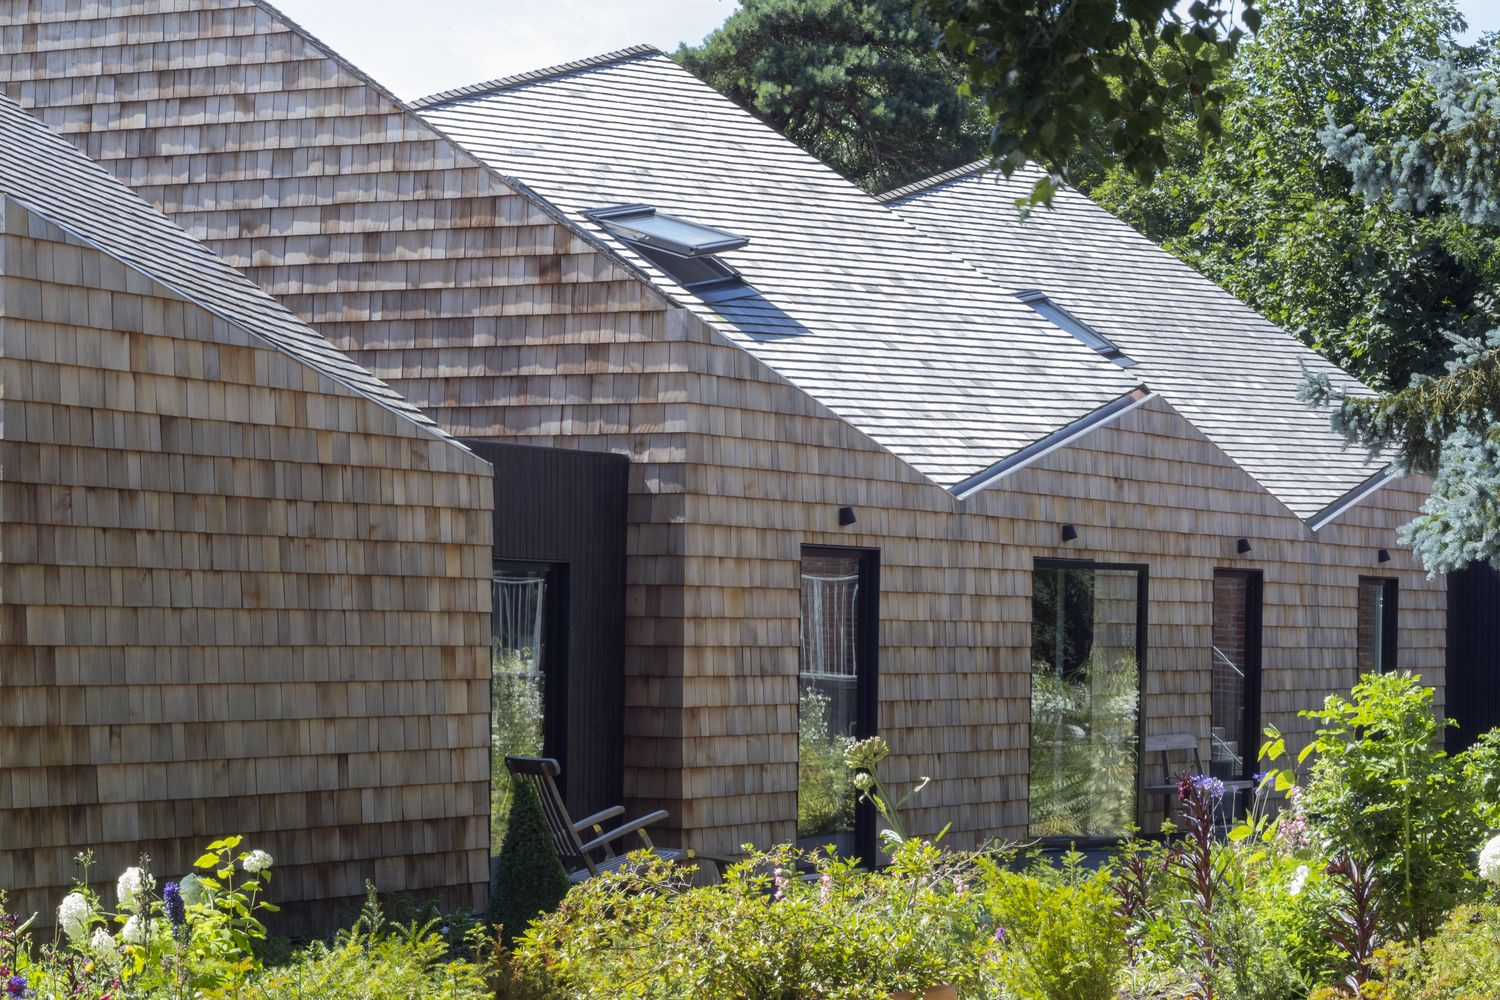 Gallery Of Five Acre Barn Blee Halligan Architects 2 Architect Sip House Roof Shapes